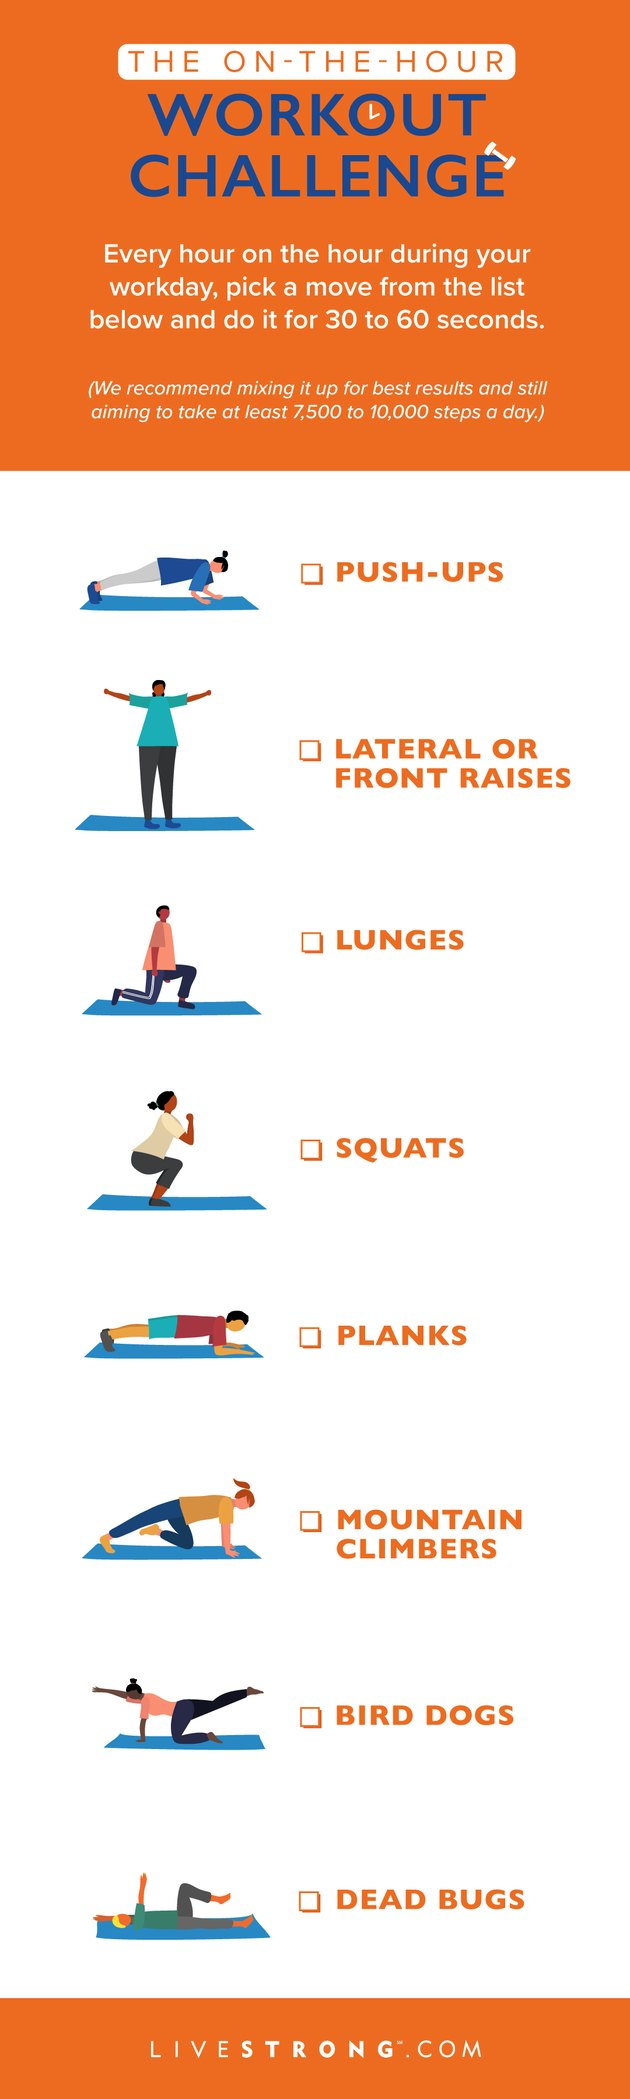 checklist graphic of 8 exercises for the on-the-hour workout challenge